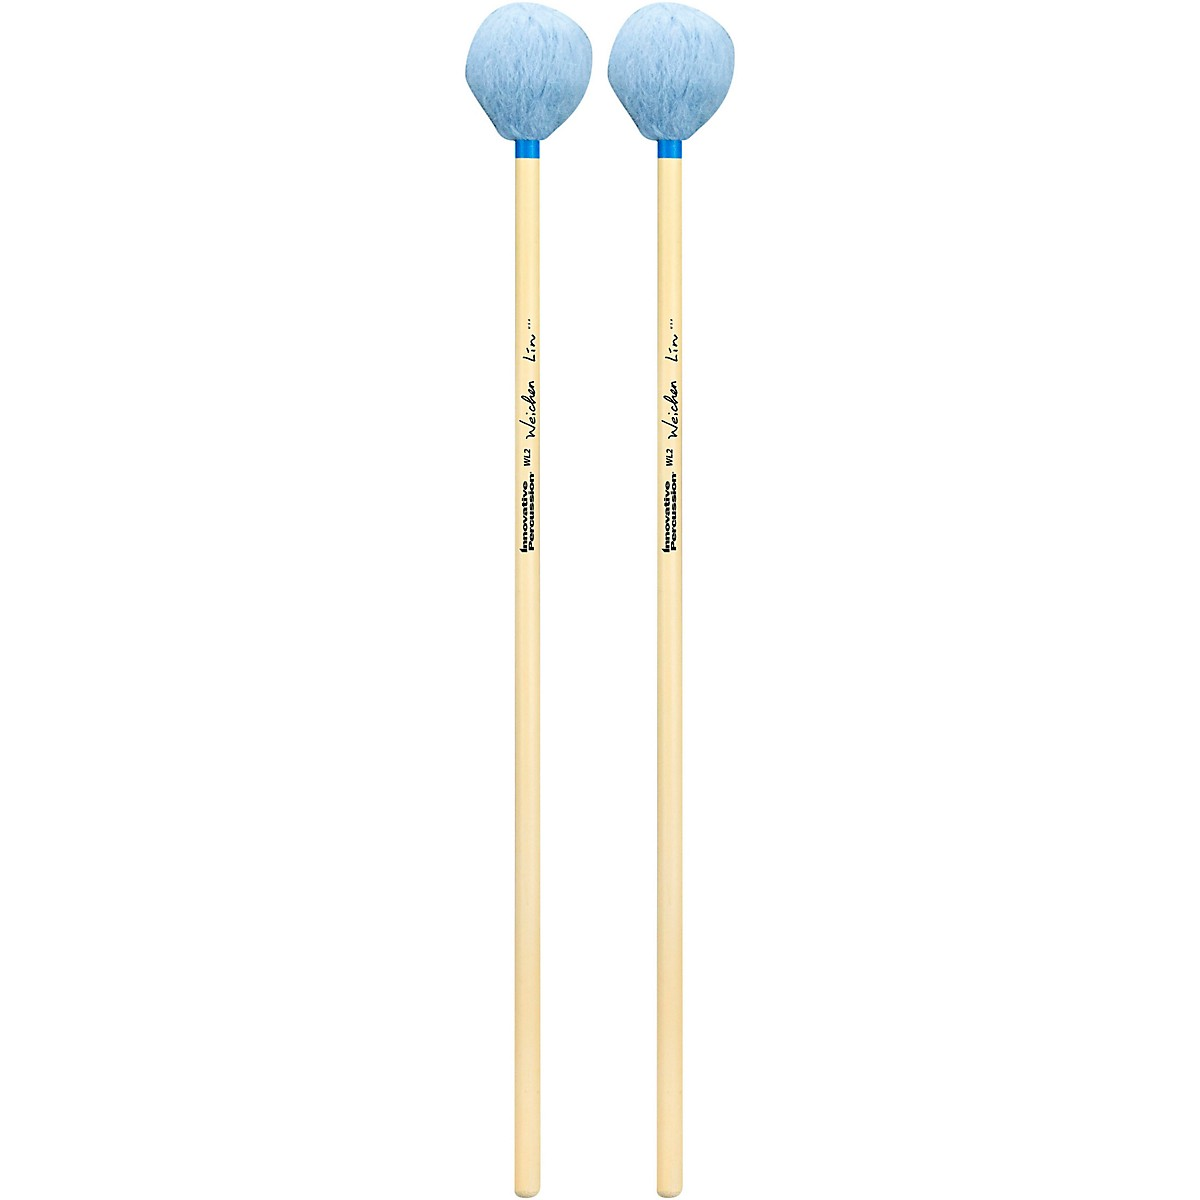 Innovative Percussion Wei-Chen Lin Series Rattan Handle Marimba Mallets